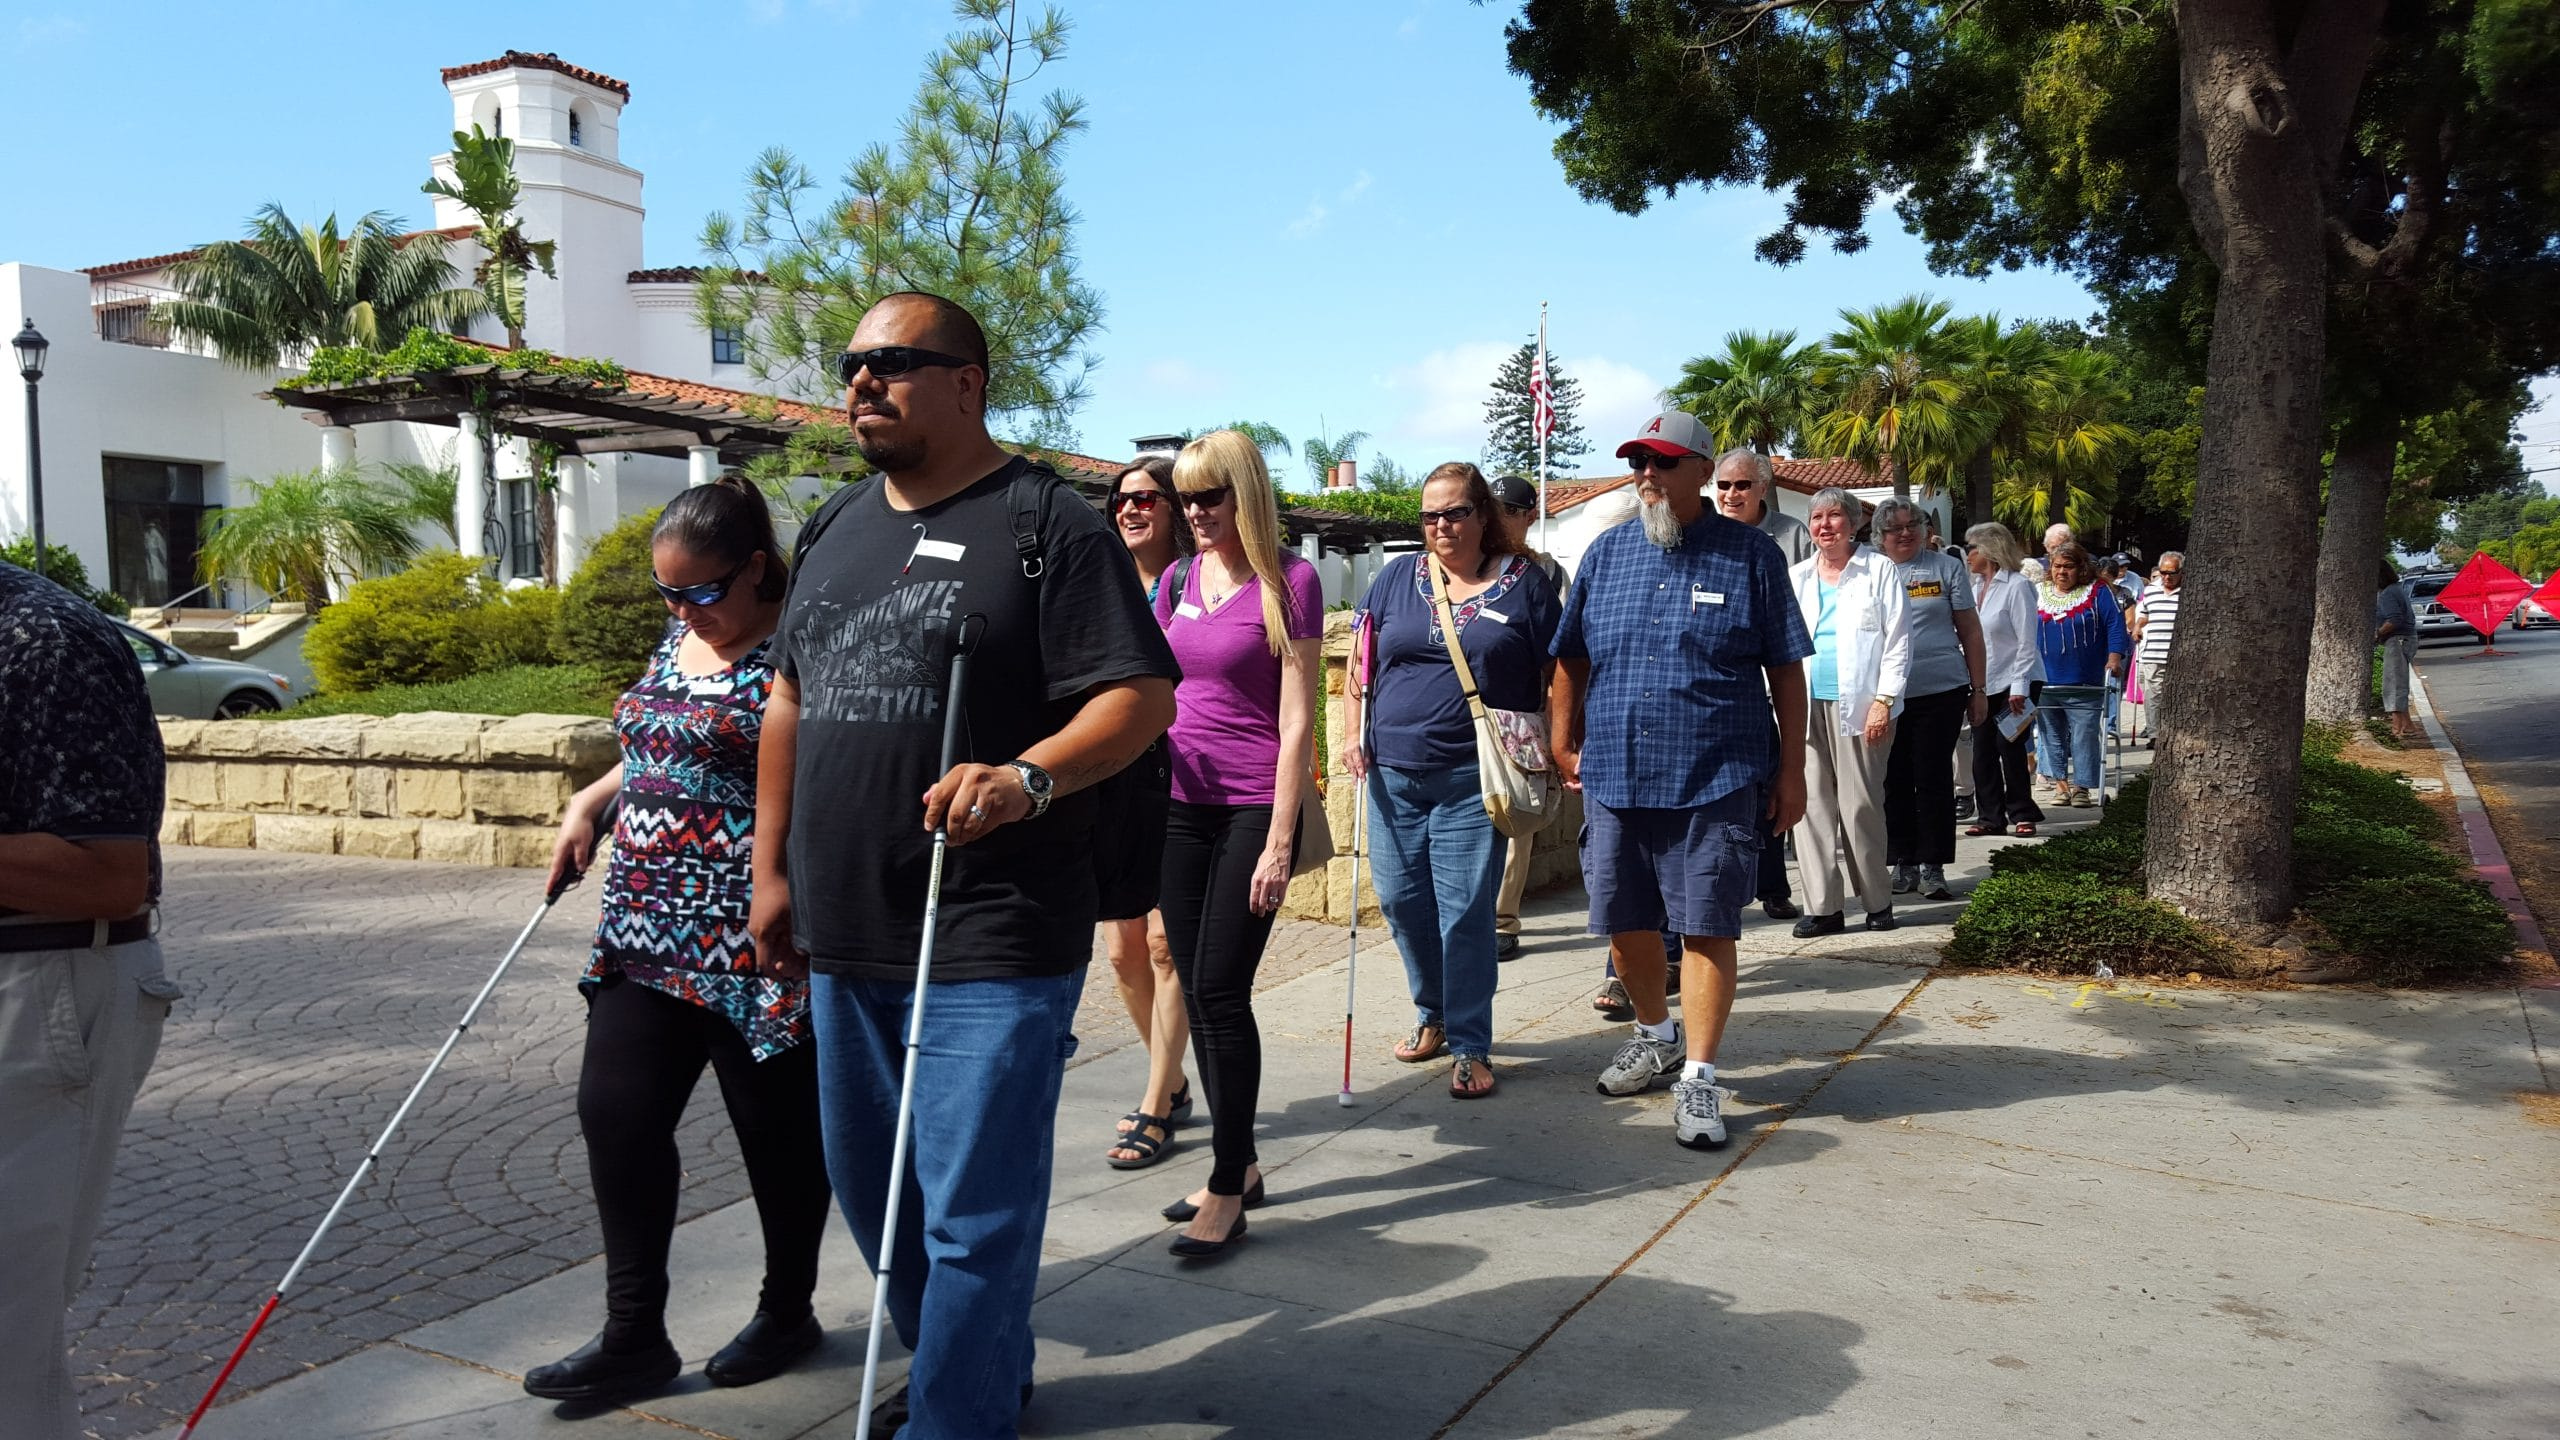 Students walk in pairs along the road infront of the Santa Barbara Center with their white canes